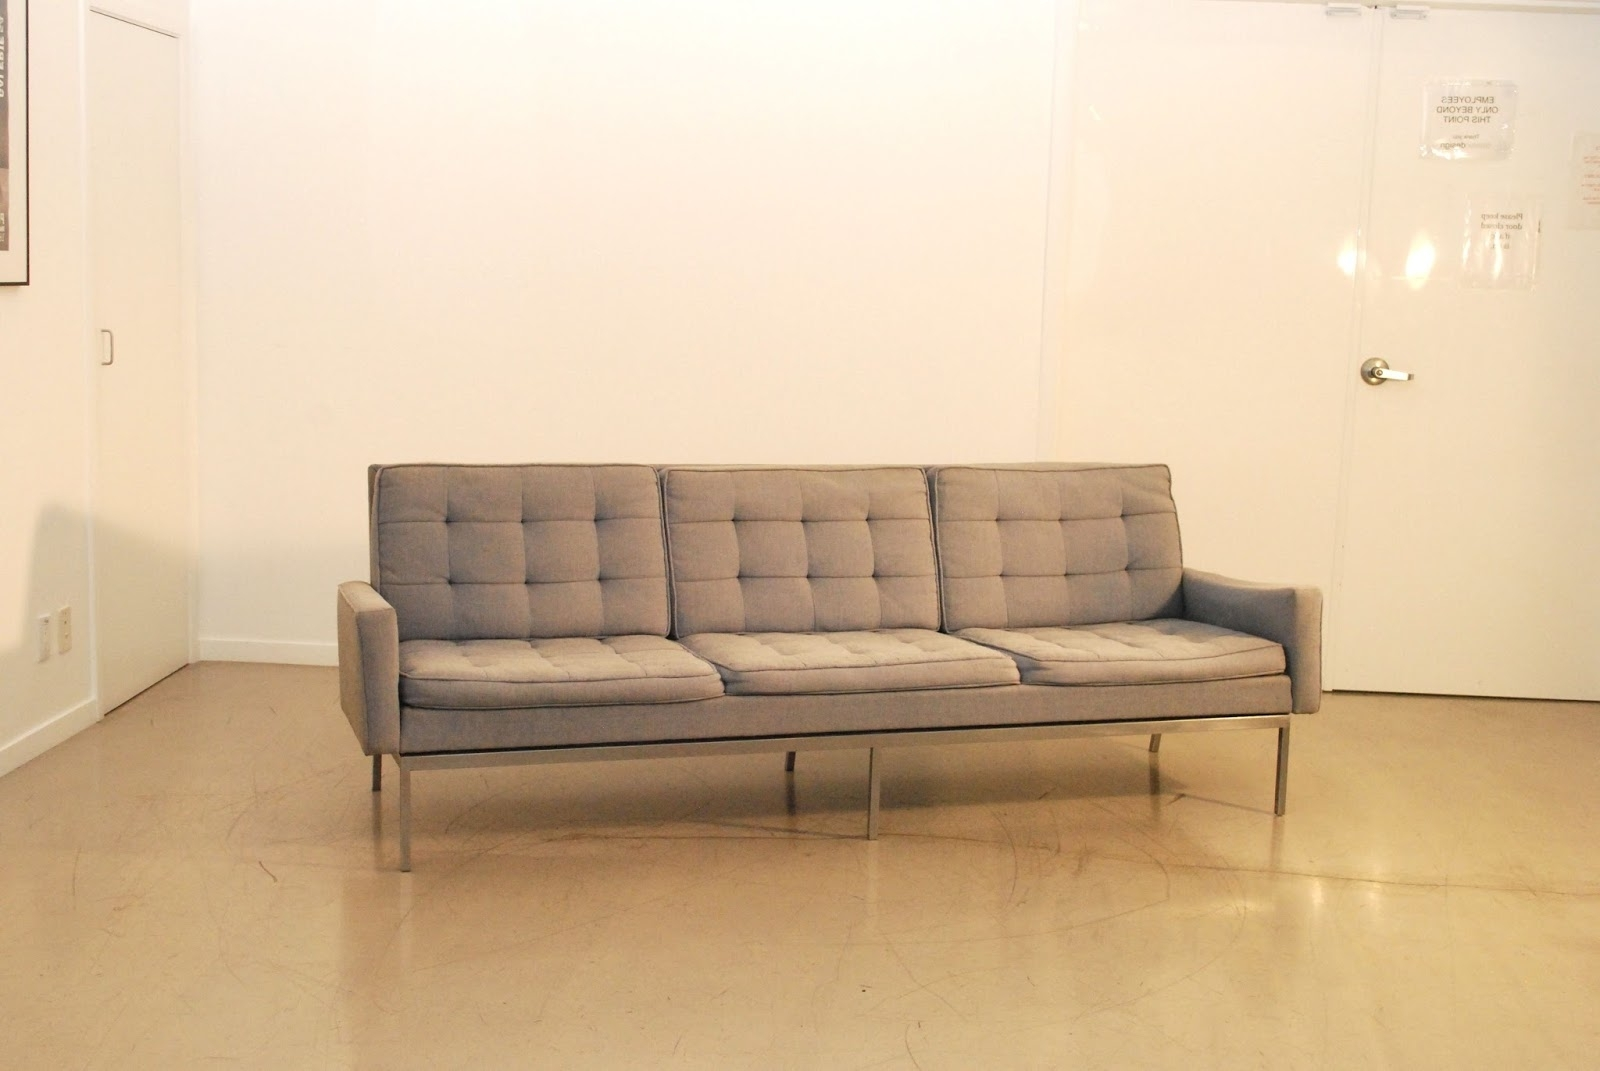 Widely Used Florence Sofas Inside Classic Design: Before & After: Vintage Florence Knoll Sofa (View 15 of 20)